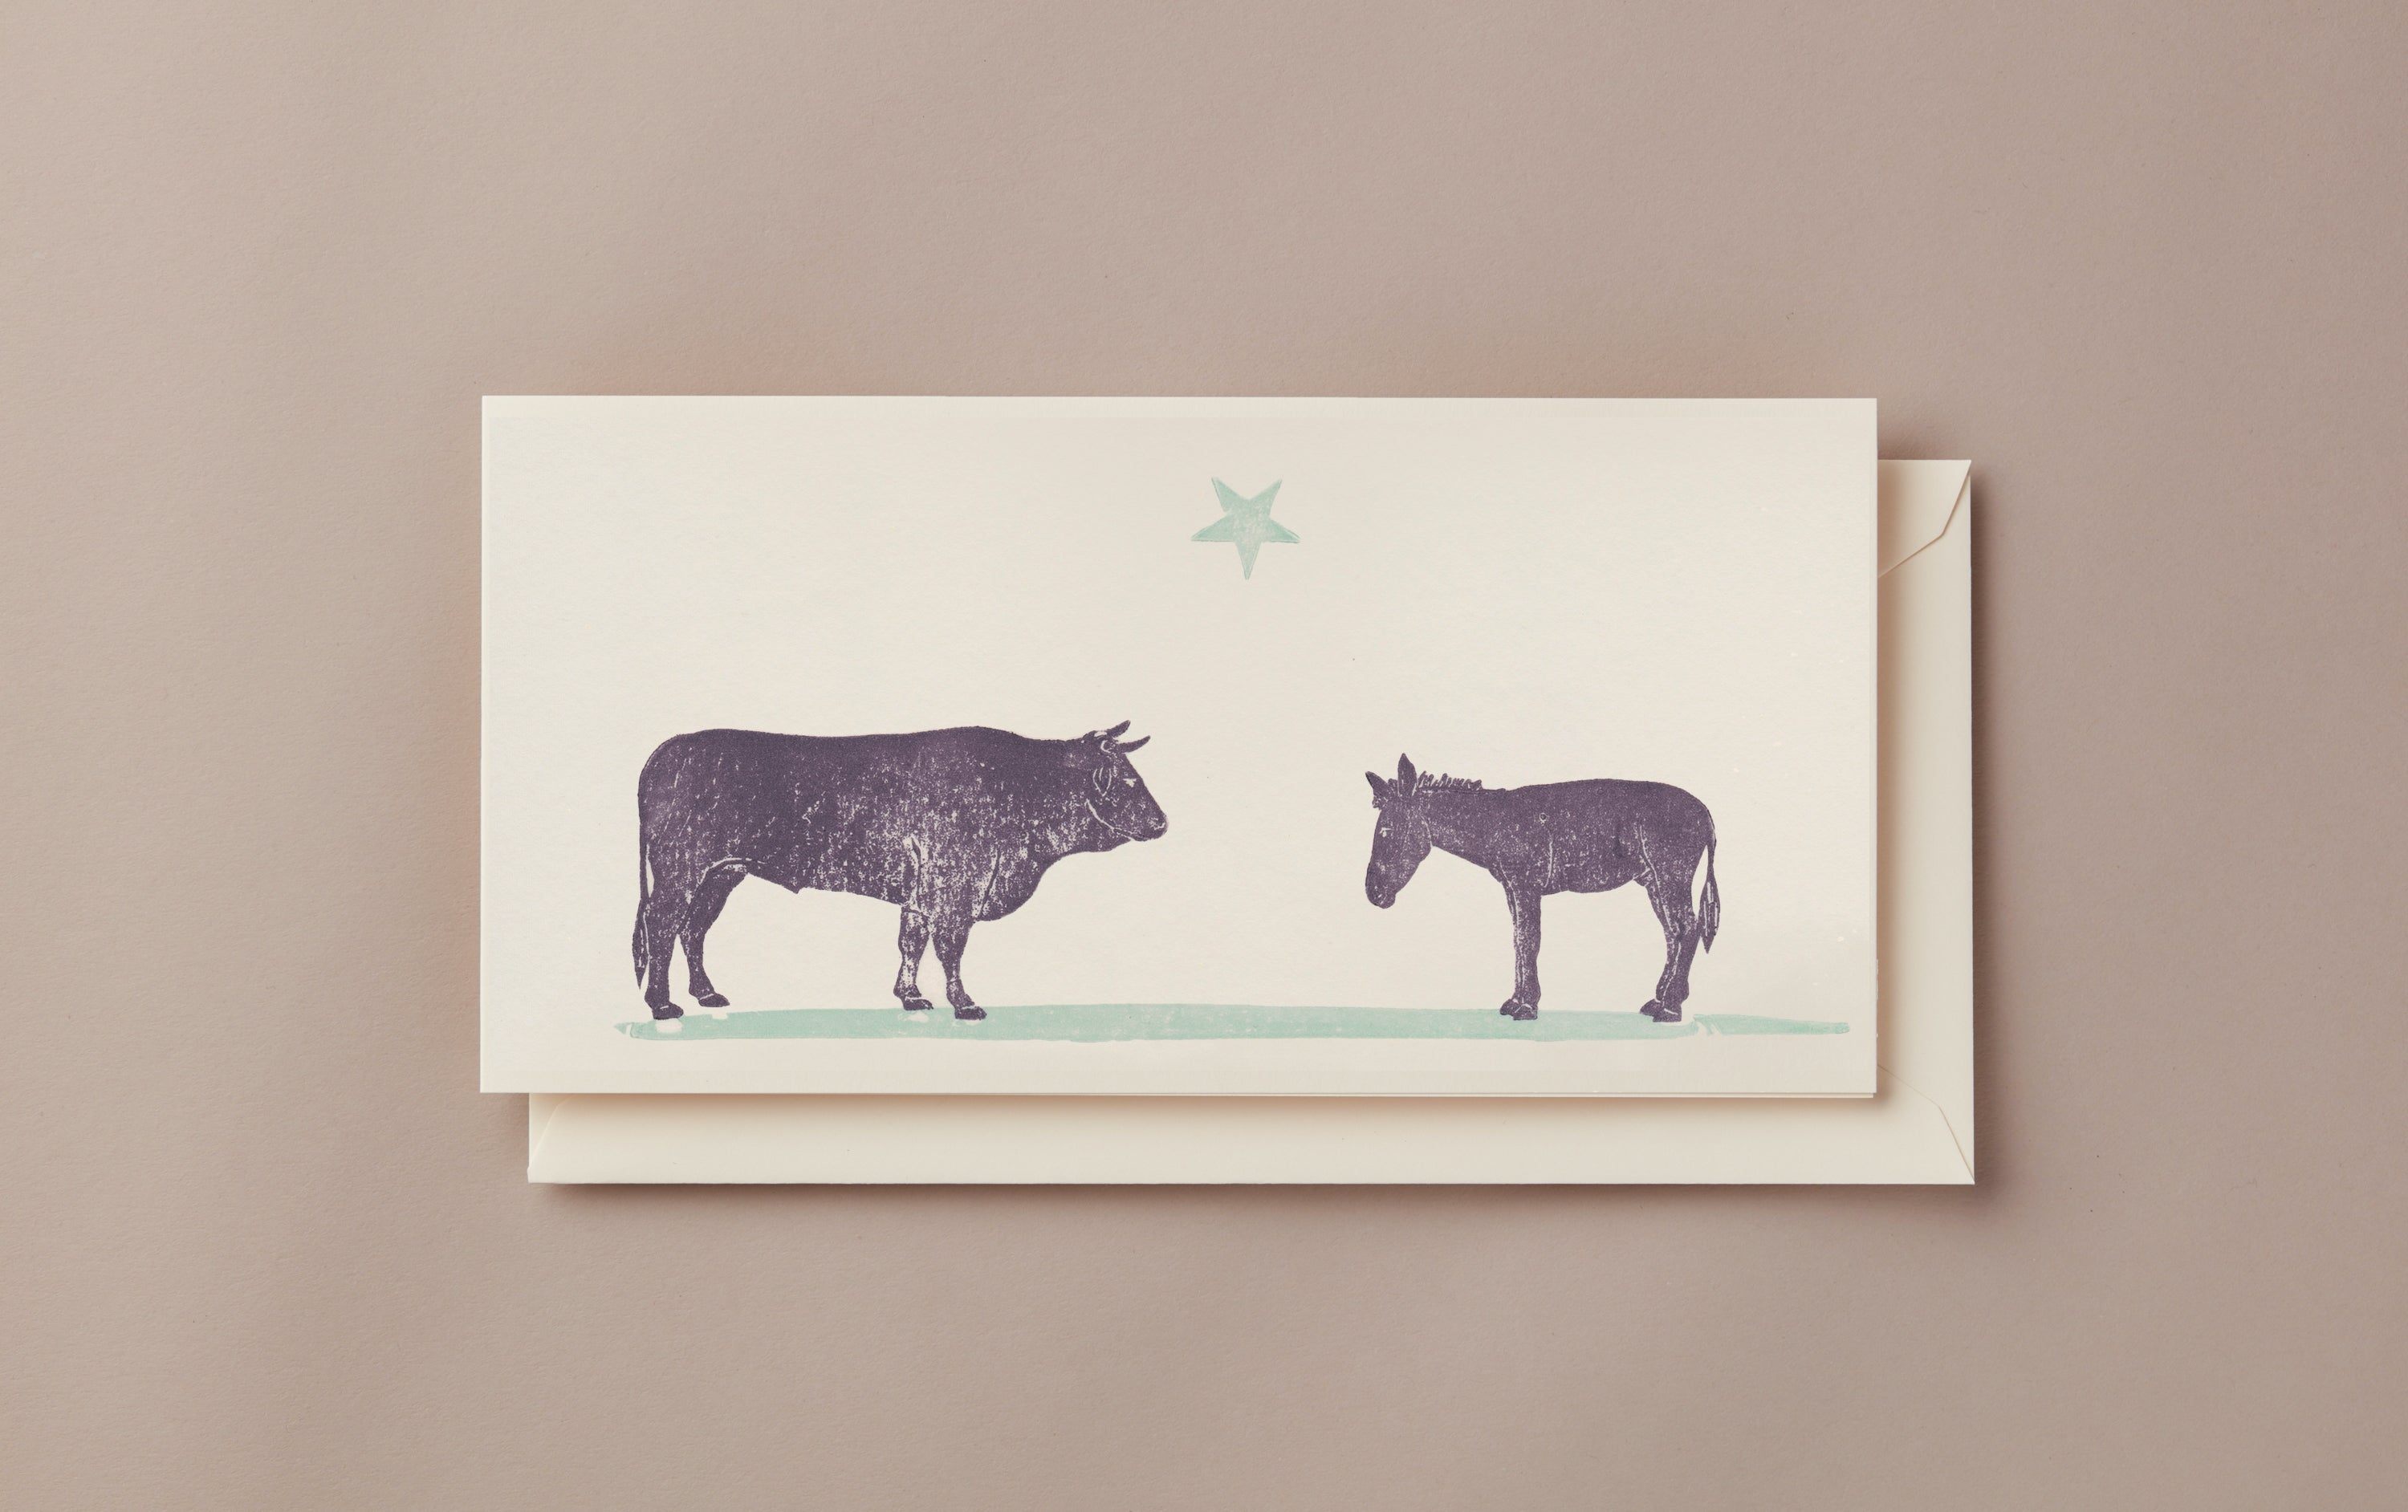 Woodblock Printed Winter Scene Card, Bull and Donkey